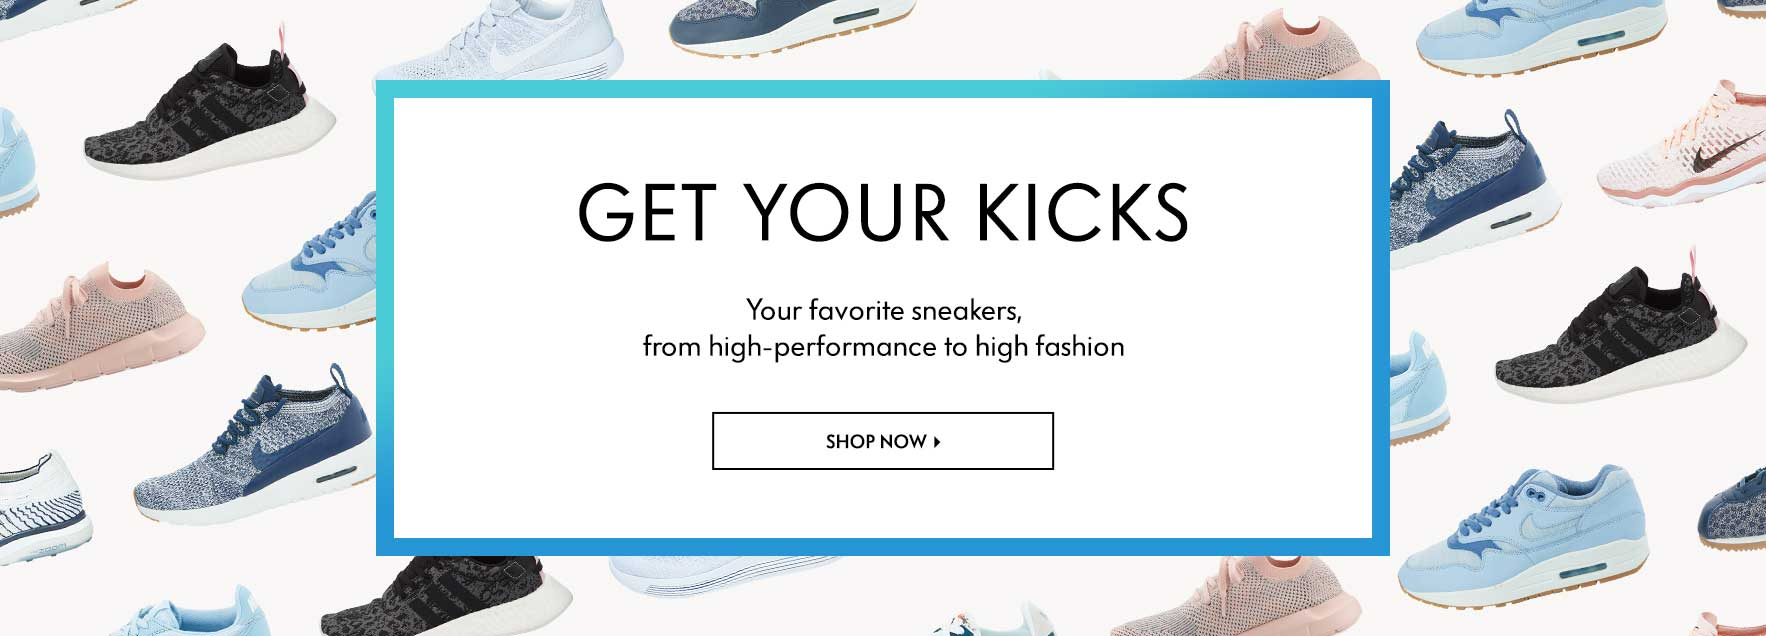 Get Your Kicks - Your favorite sneakers, from high-performance to high fashion